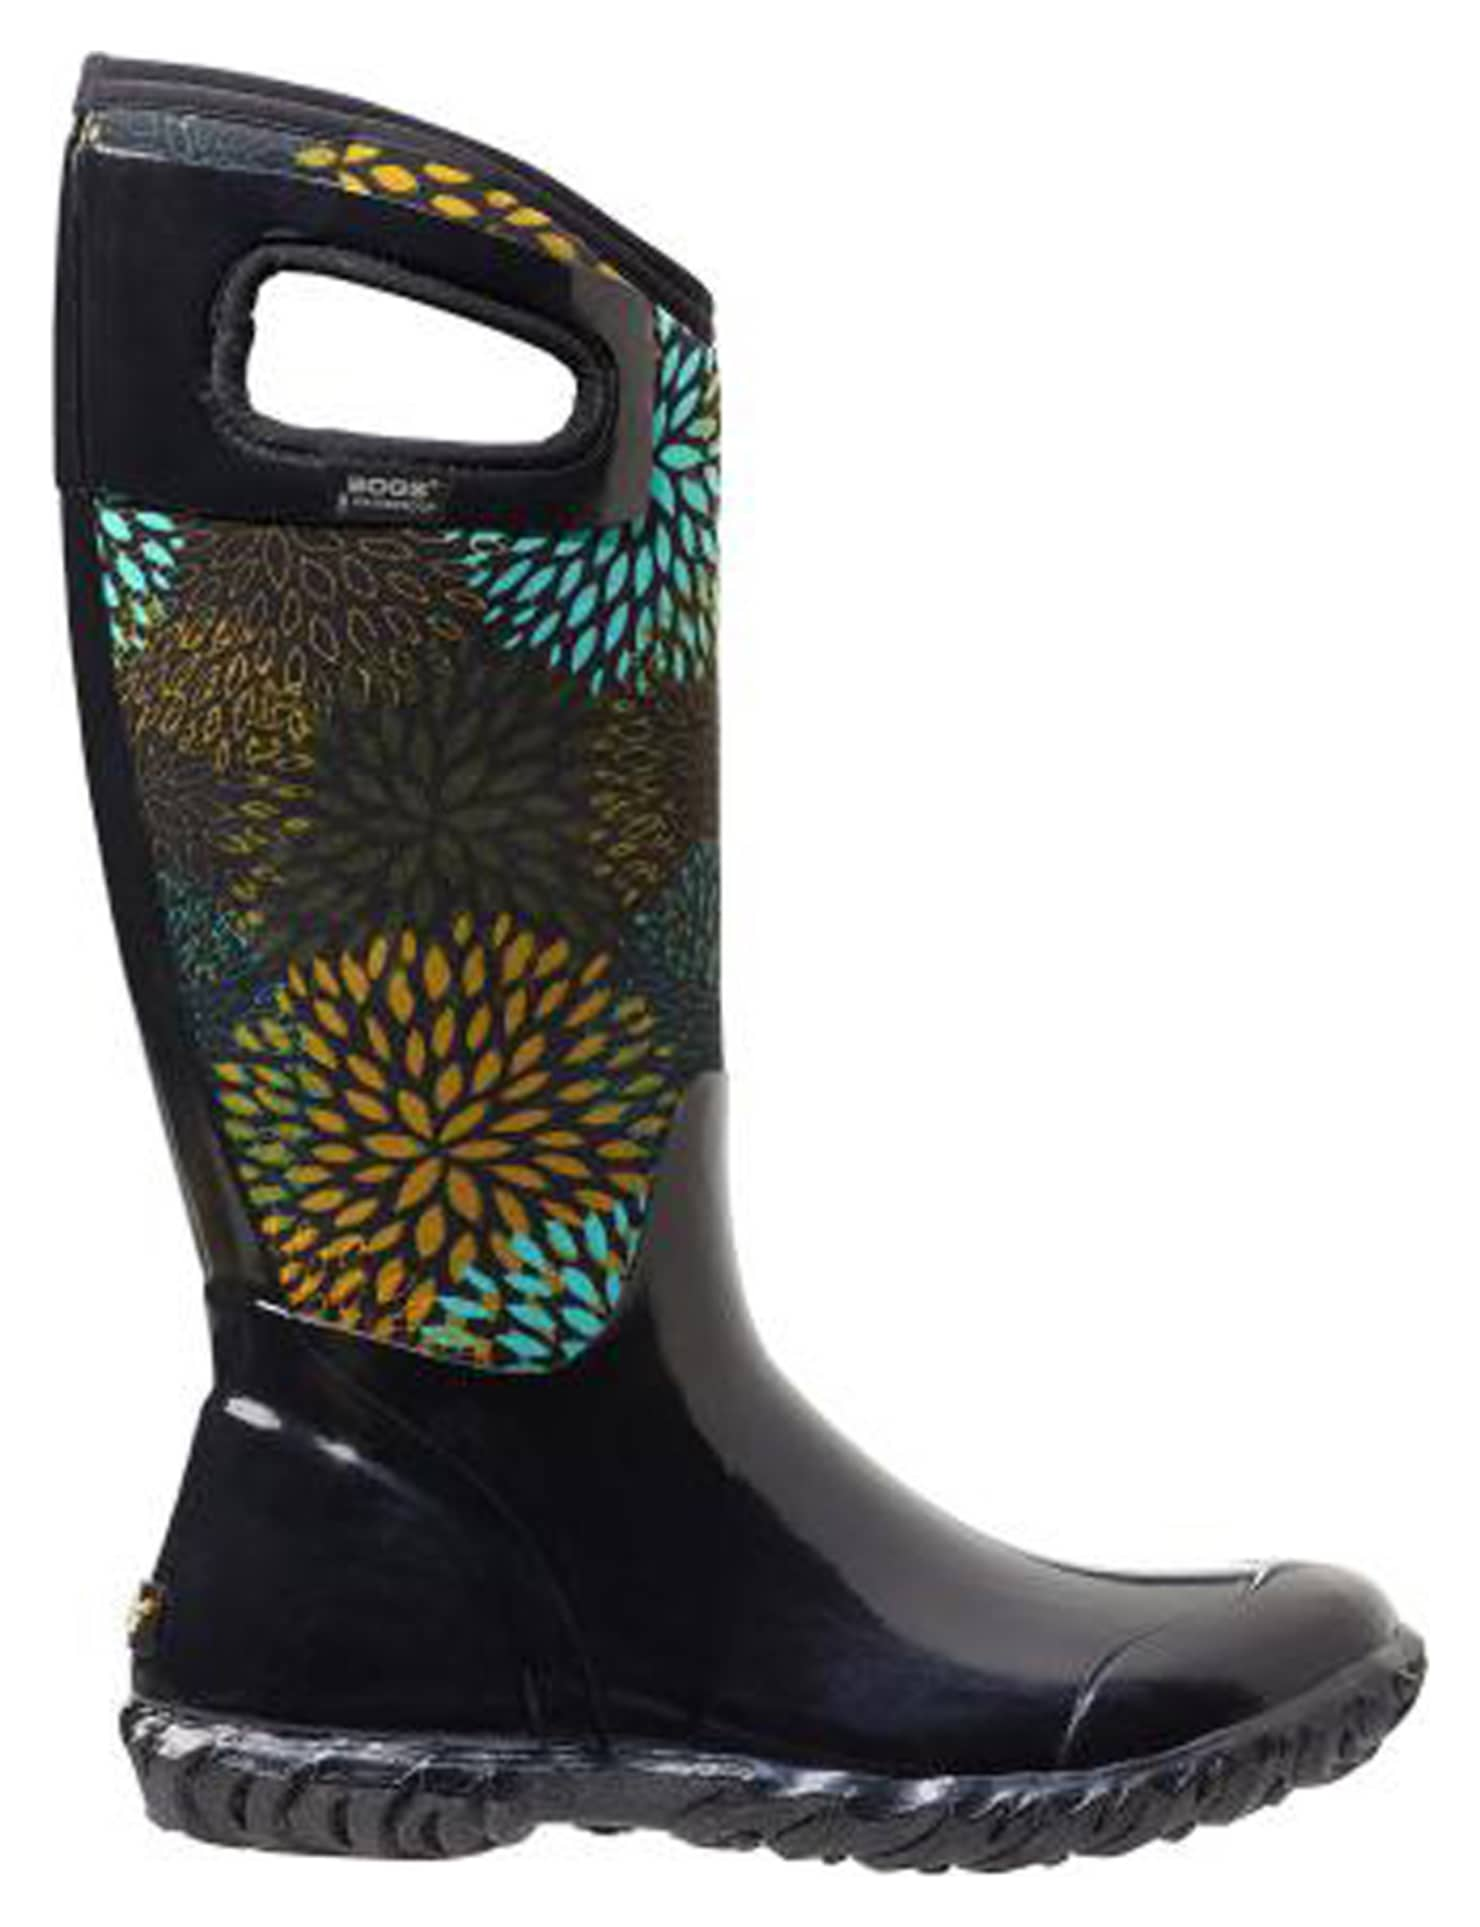 Bogs Max-Wick moves sweat away from your foot to keep you dry. BOGS built its first boot for Oregon farmers to deliver comfort whatever Bogs Women's Plimsoll Leafy Tall Snow Boot. United States. Amazon Music Stream millions of songs: Amazon Advertising Find.